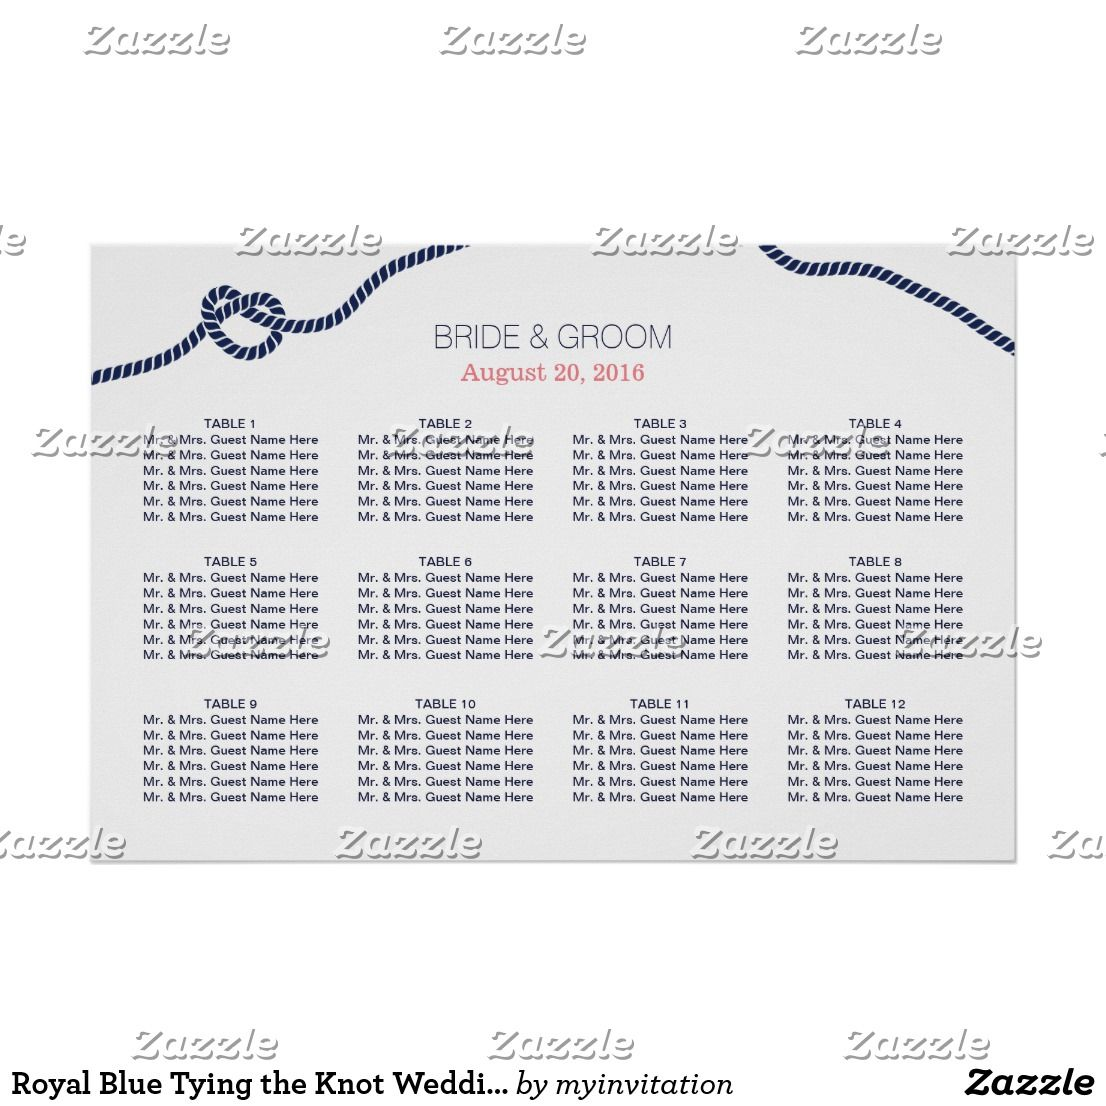 Royal Blue Tying The Knot Wedding Seating Chart